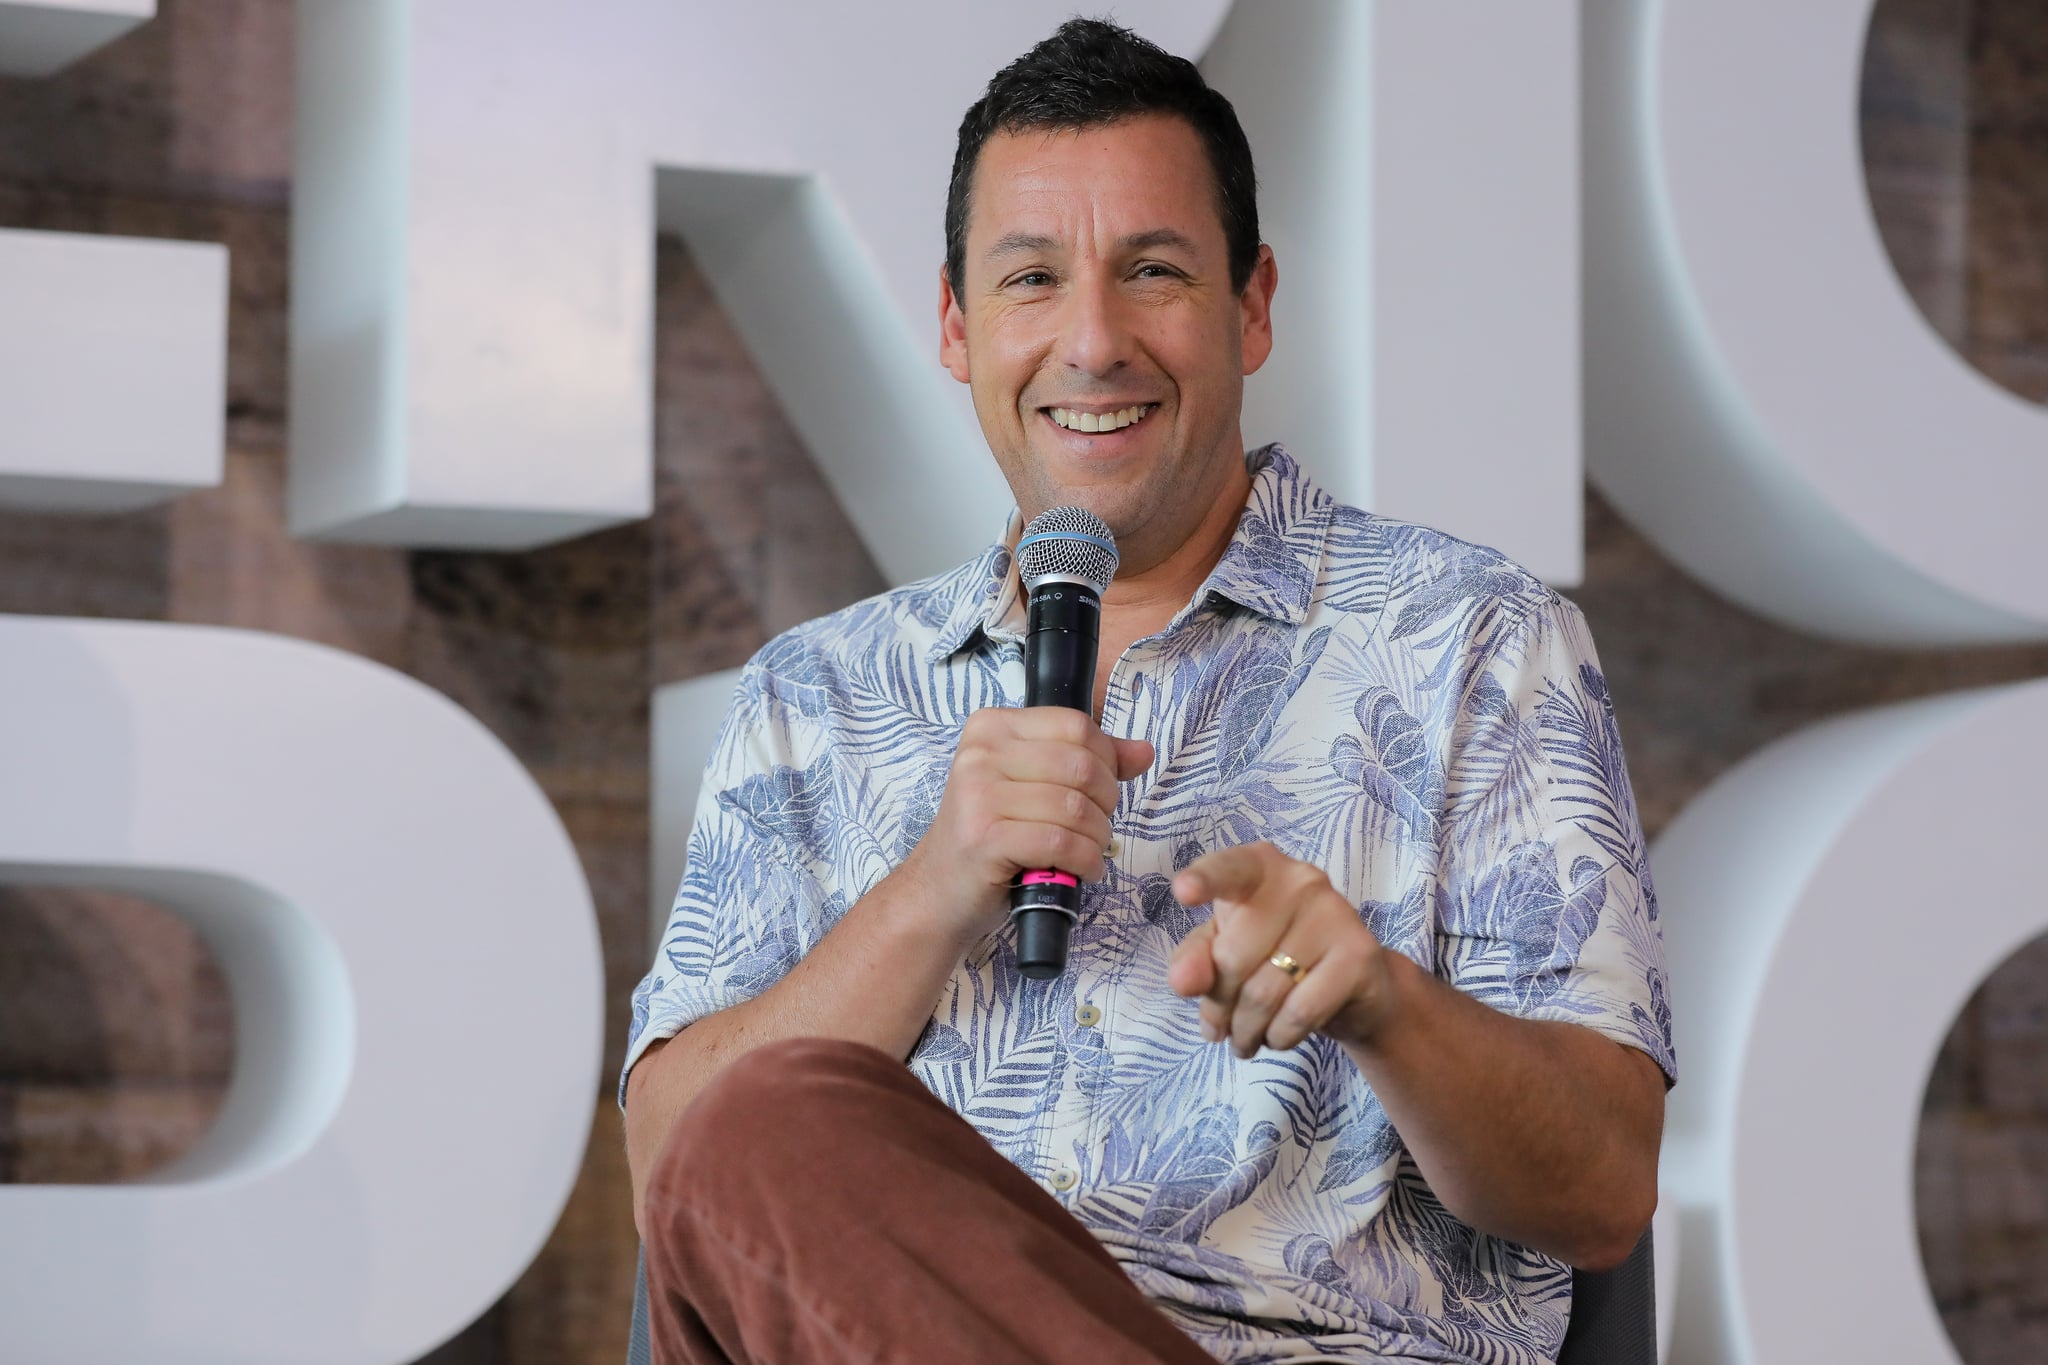 MEXICO CITY, MEXICO - JUNE 13: Adam Sandler speaks during the press conference of the new Netflix movie 'Murder Mystery' at St. Regis Hotel on June 13, 2019 in Mexico City, Mexico. (Photo by Hector Vivas/Getty Images for NETFLIX)